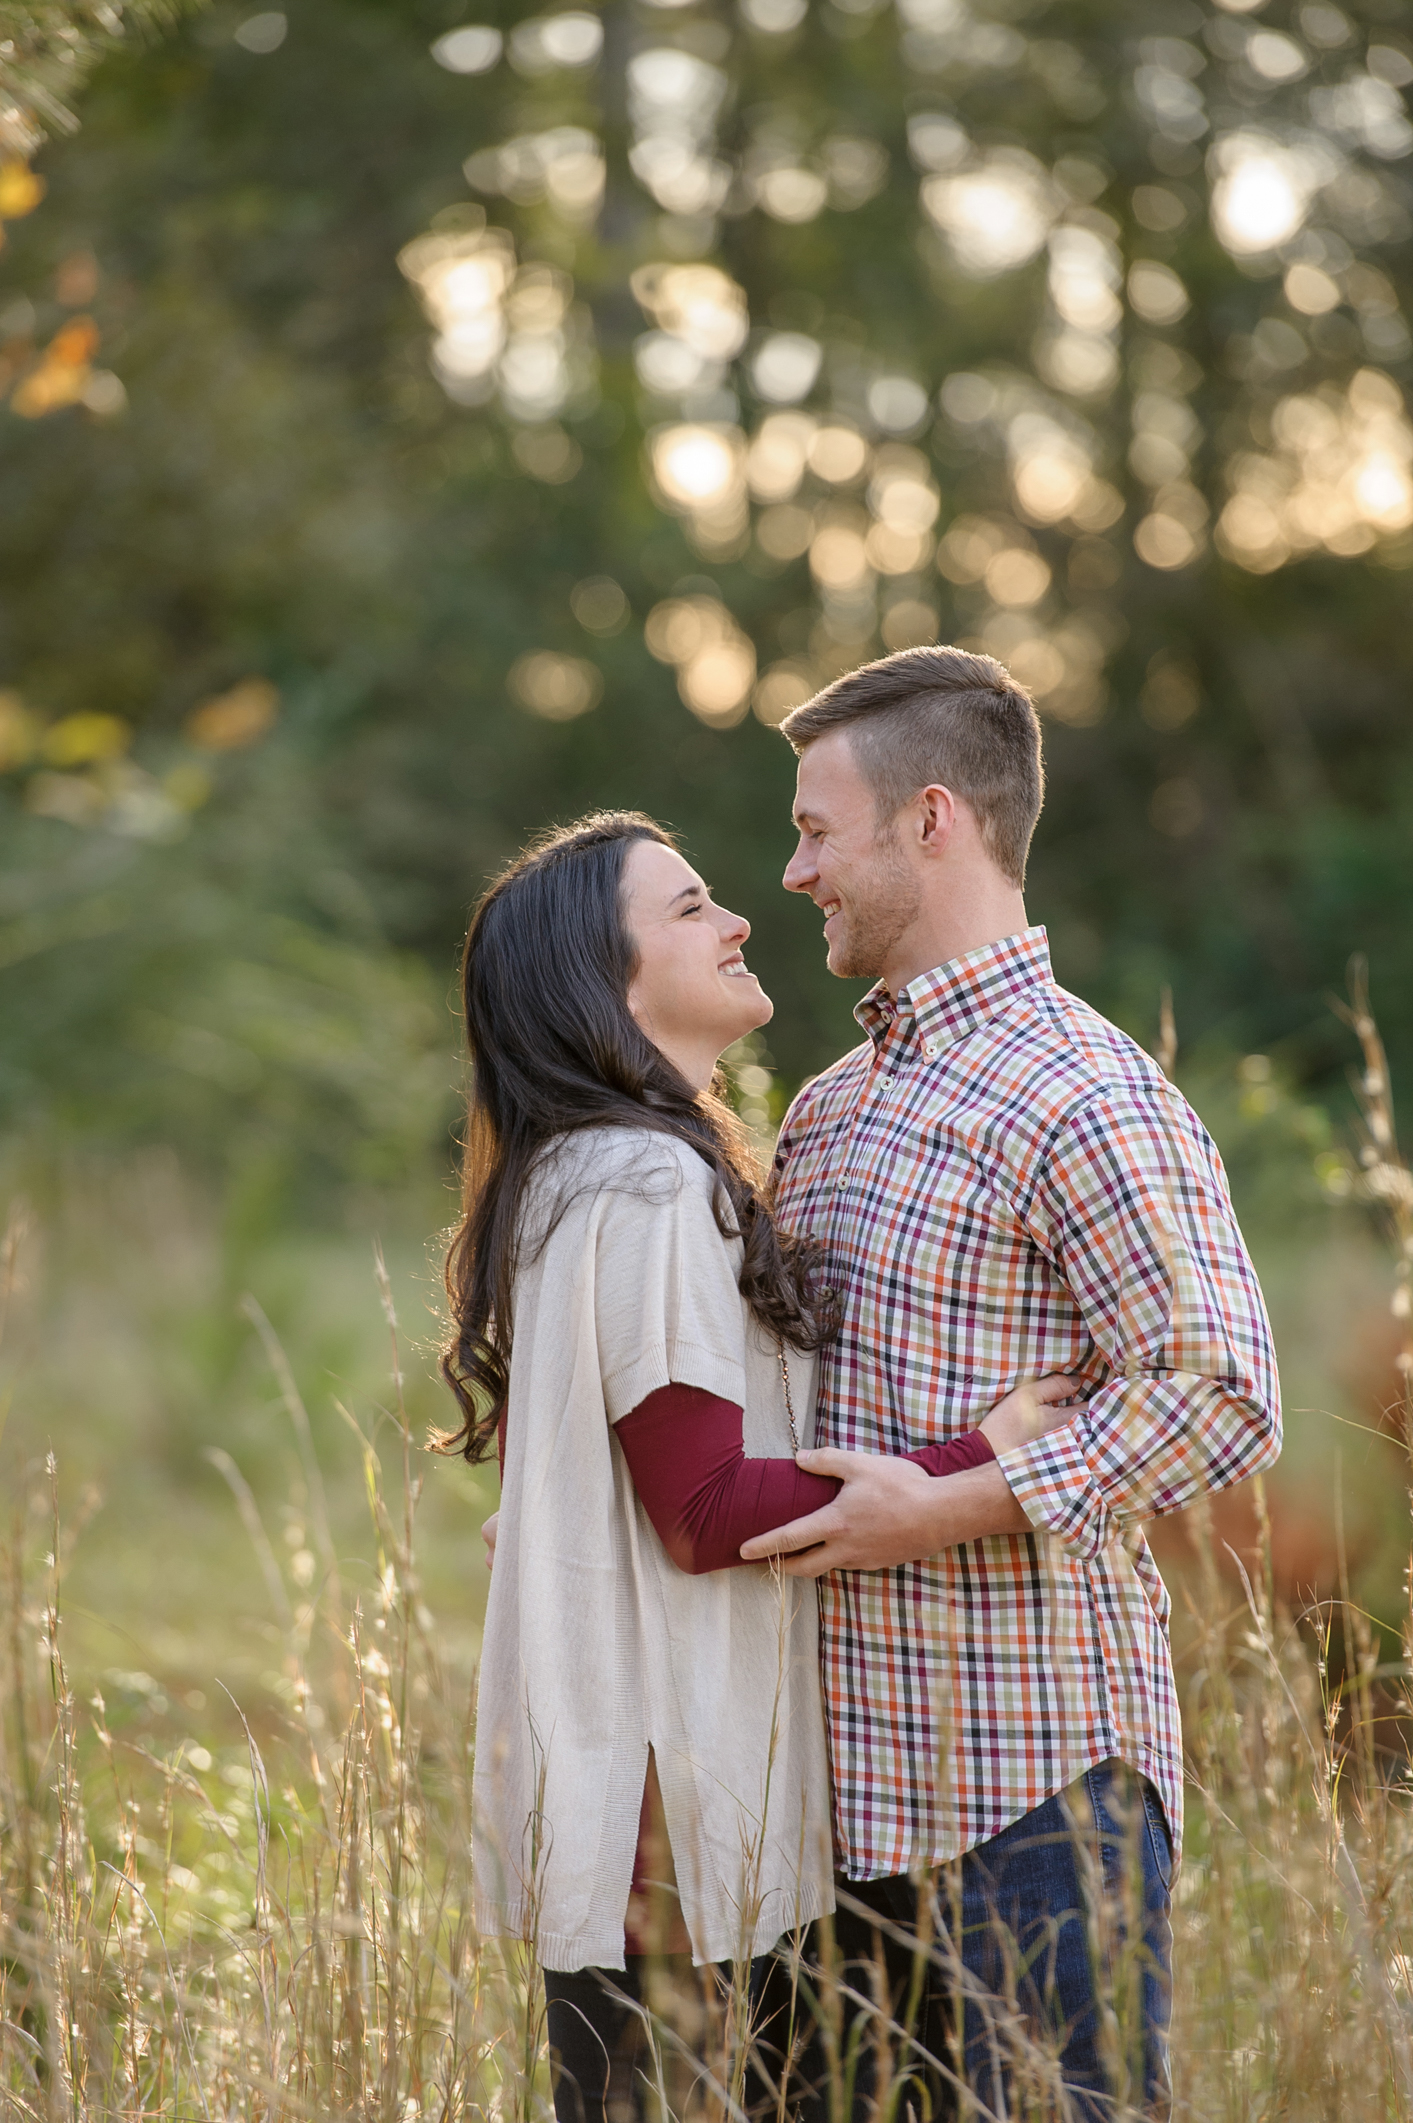 Outdoor engagement session-2.JPG